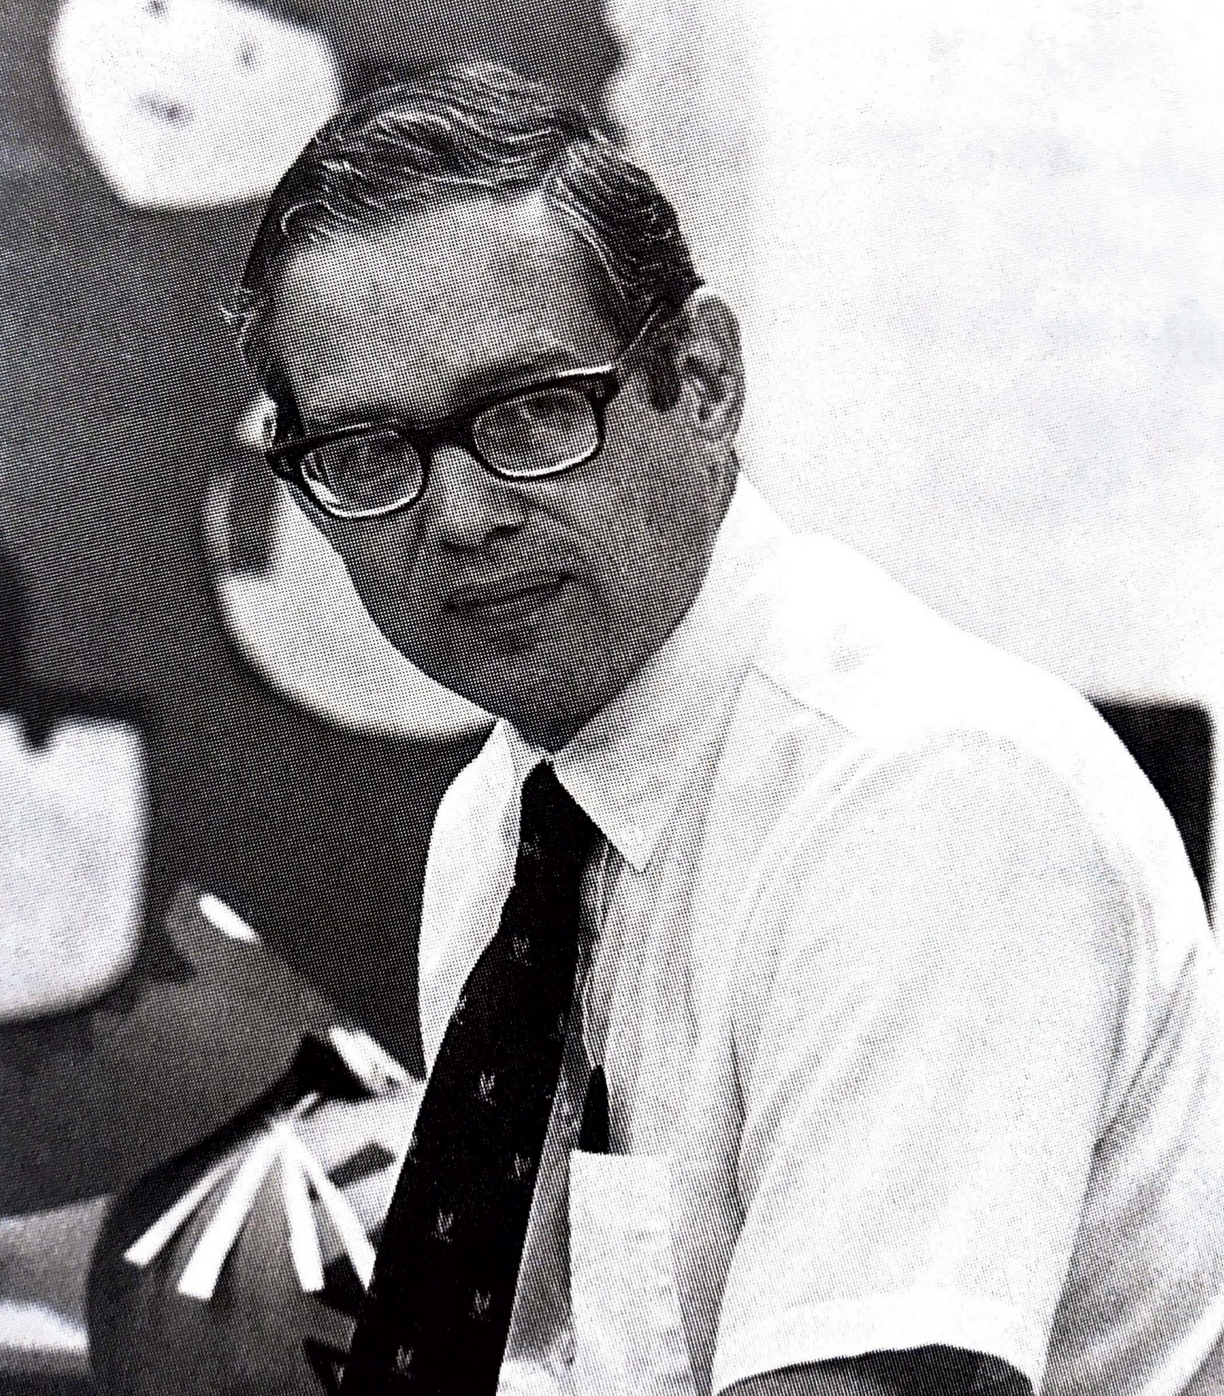 Dr. Edward J. Fox, Jr.